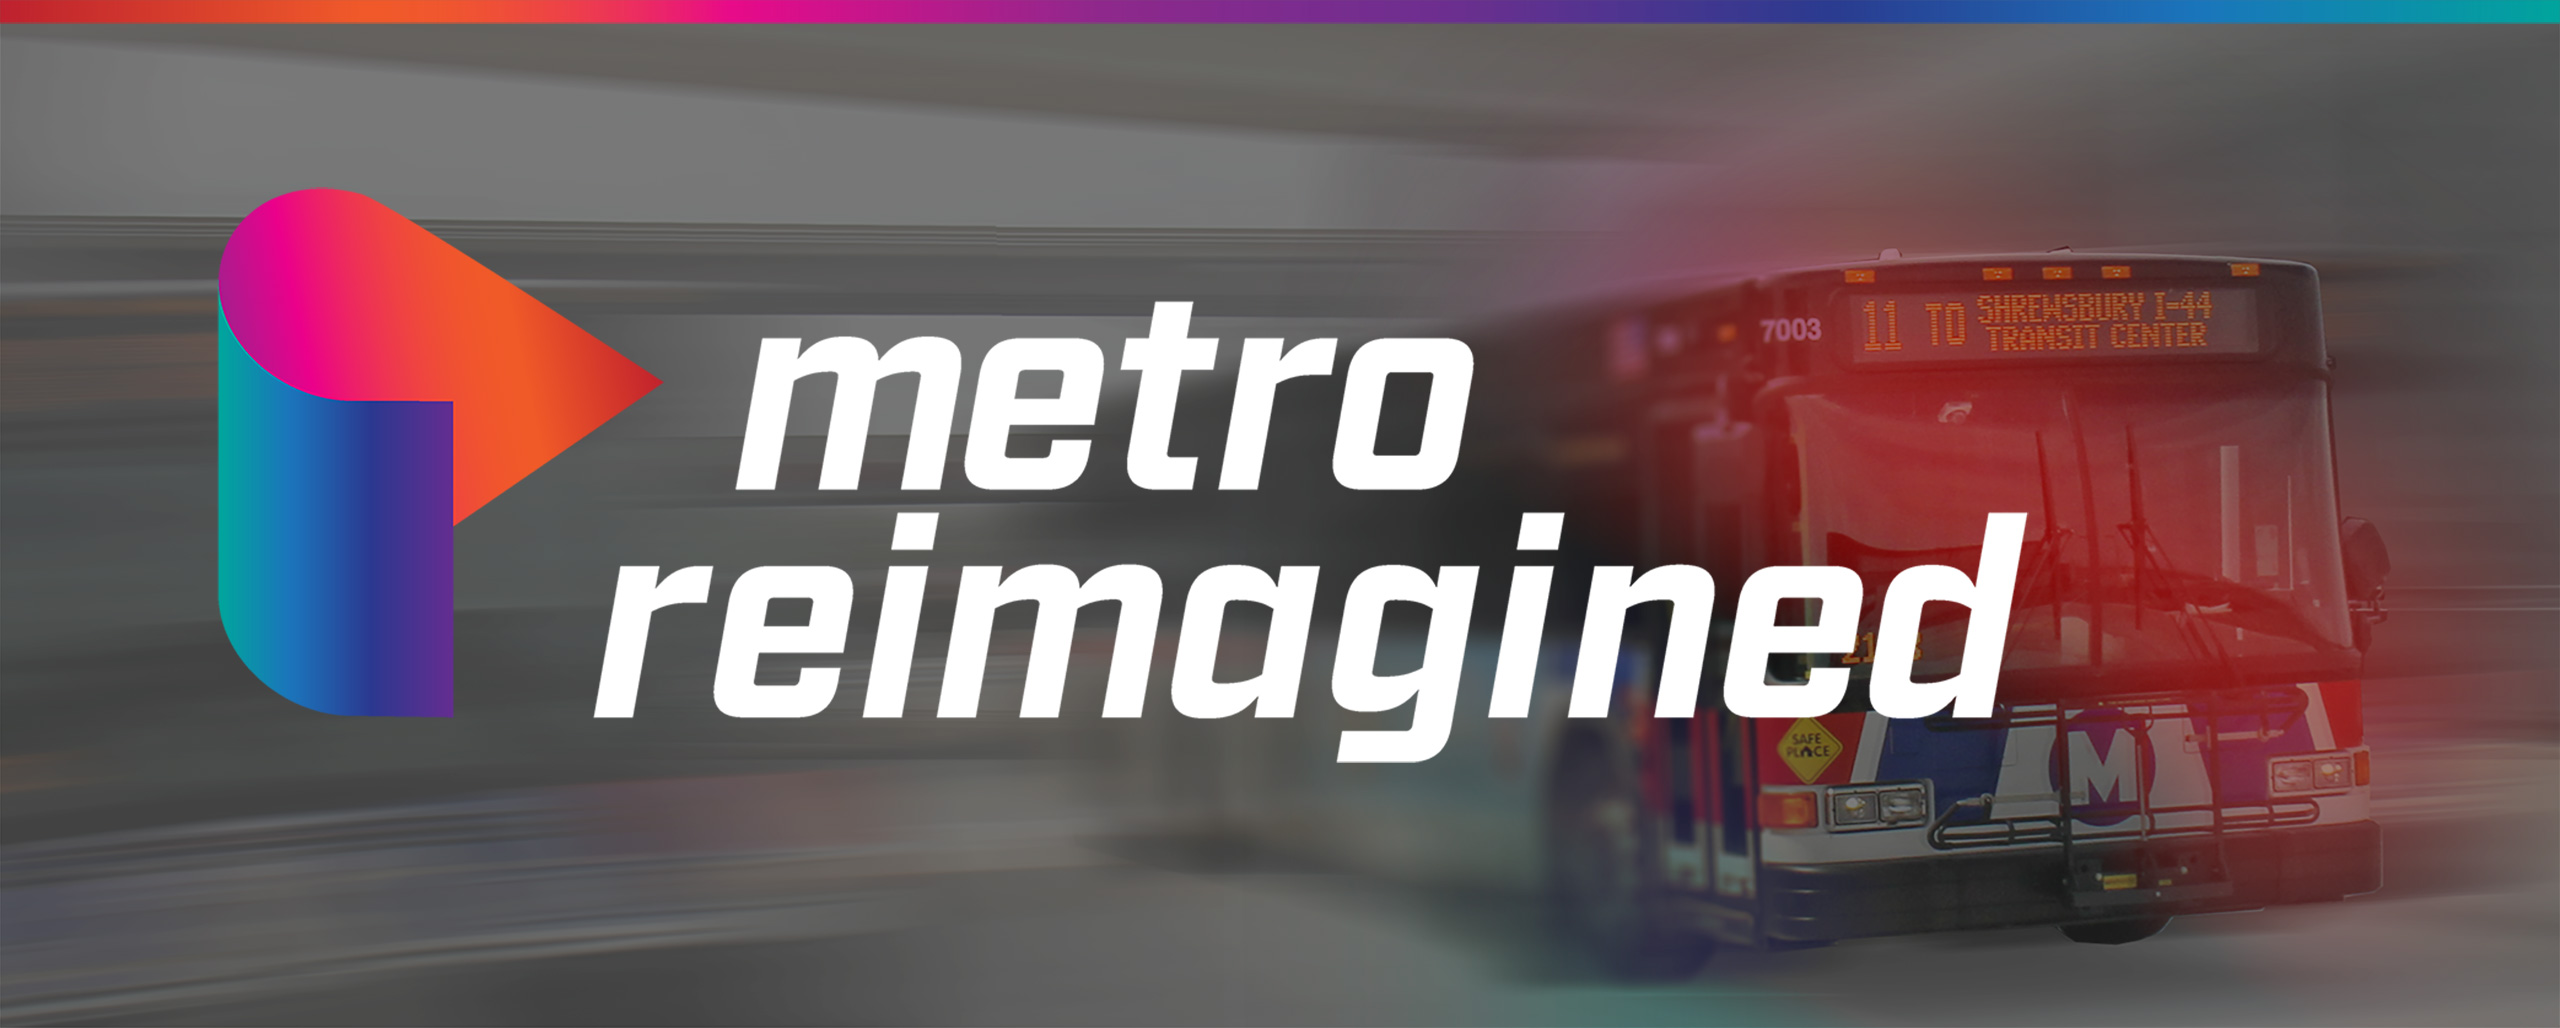 Metro Reimagined logo overlay on bus in motion